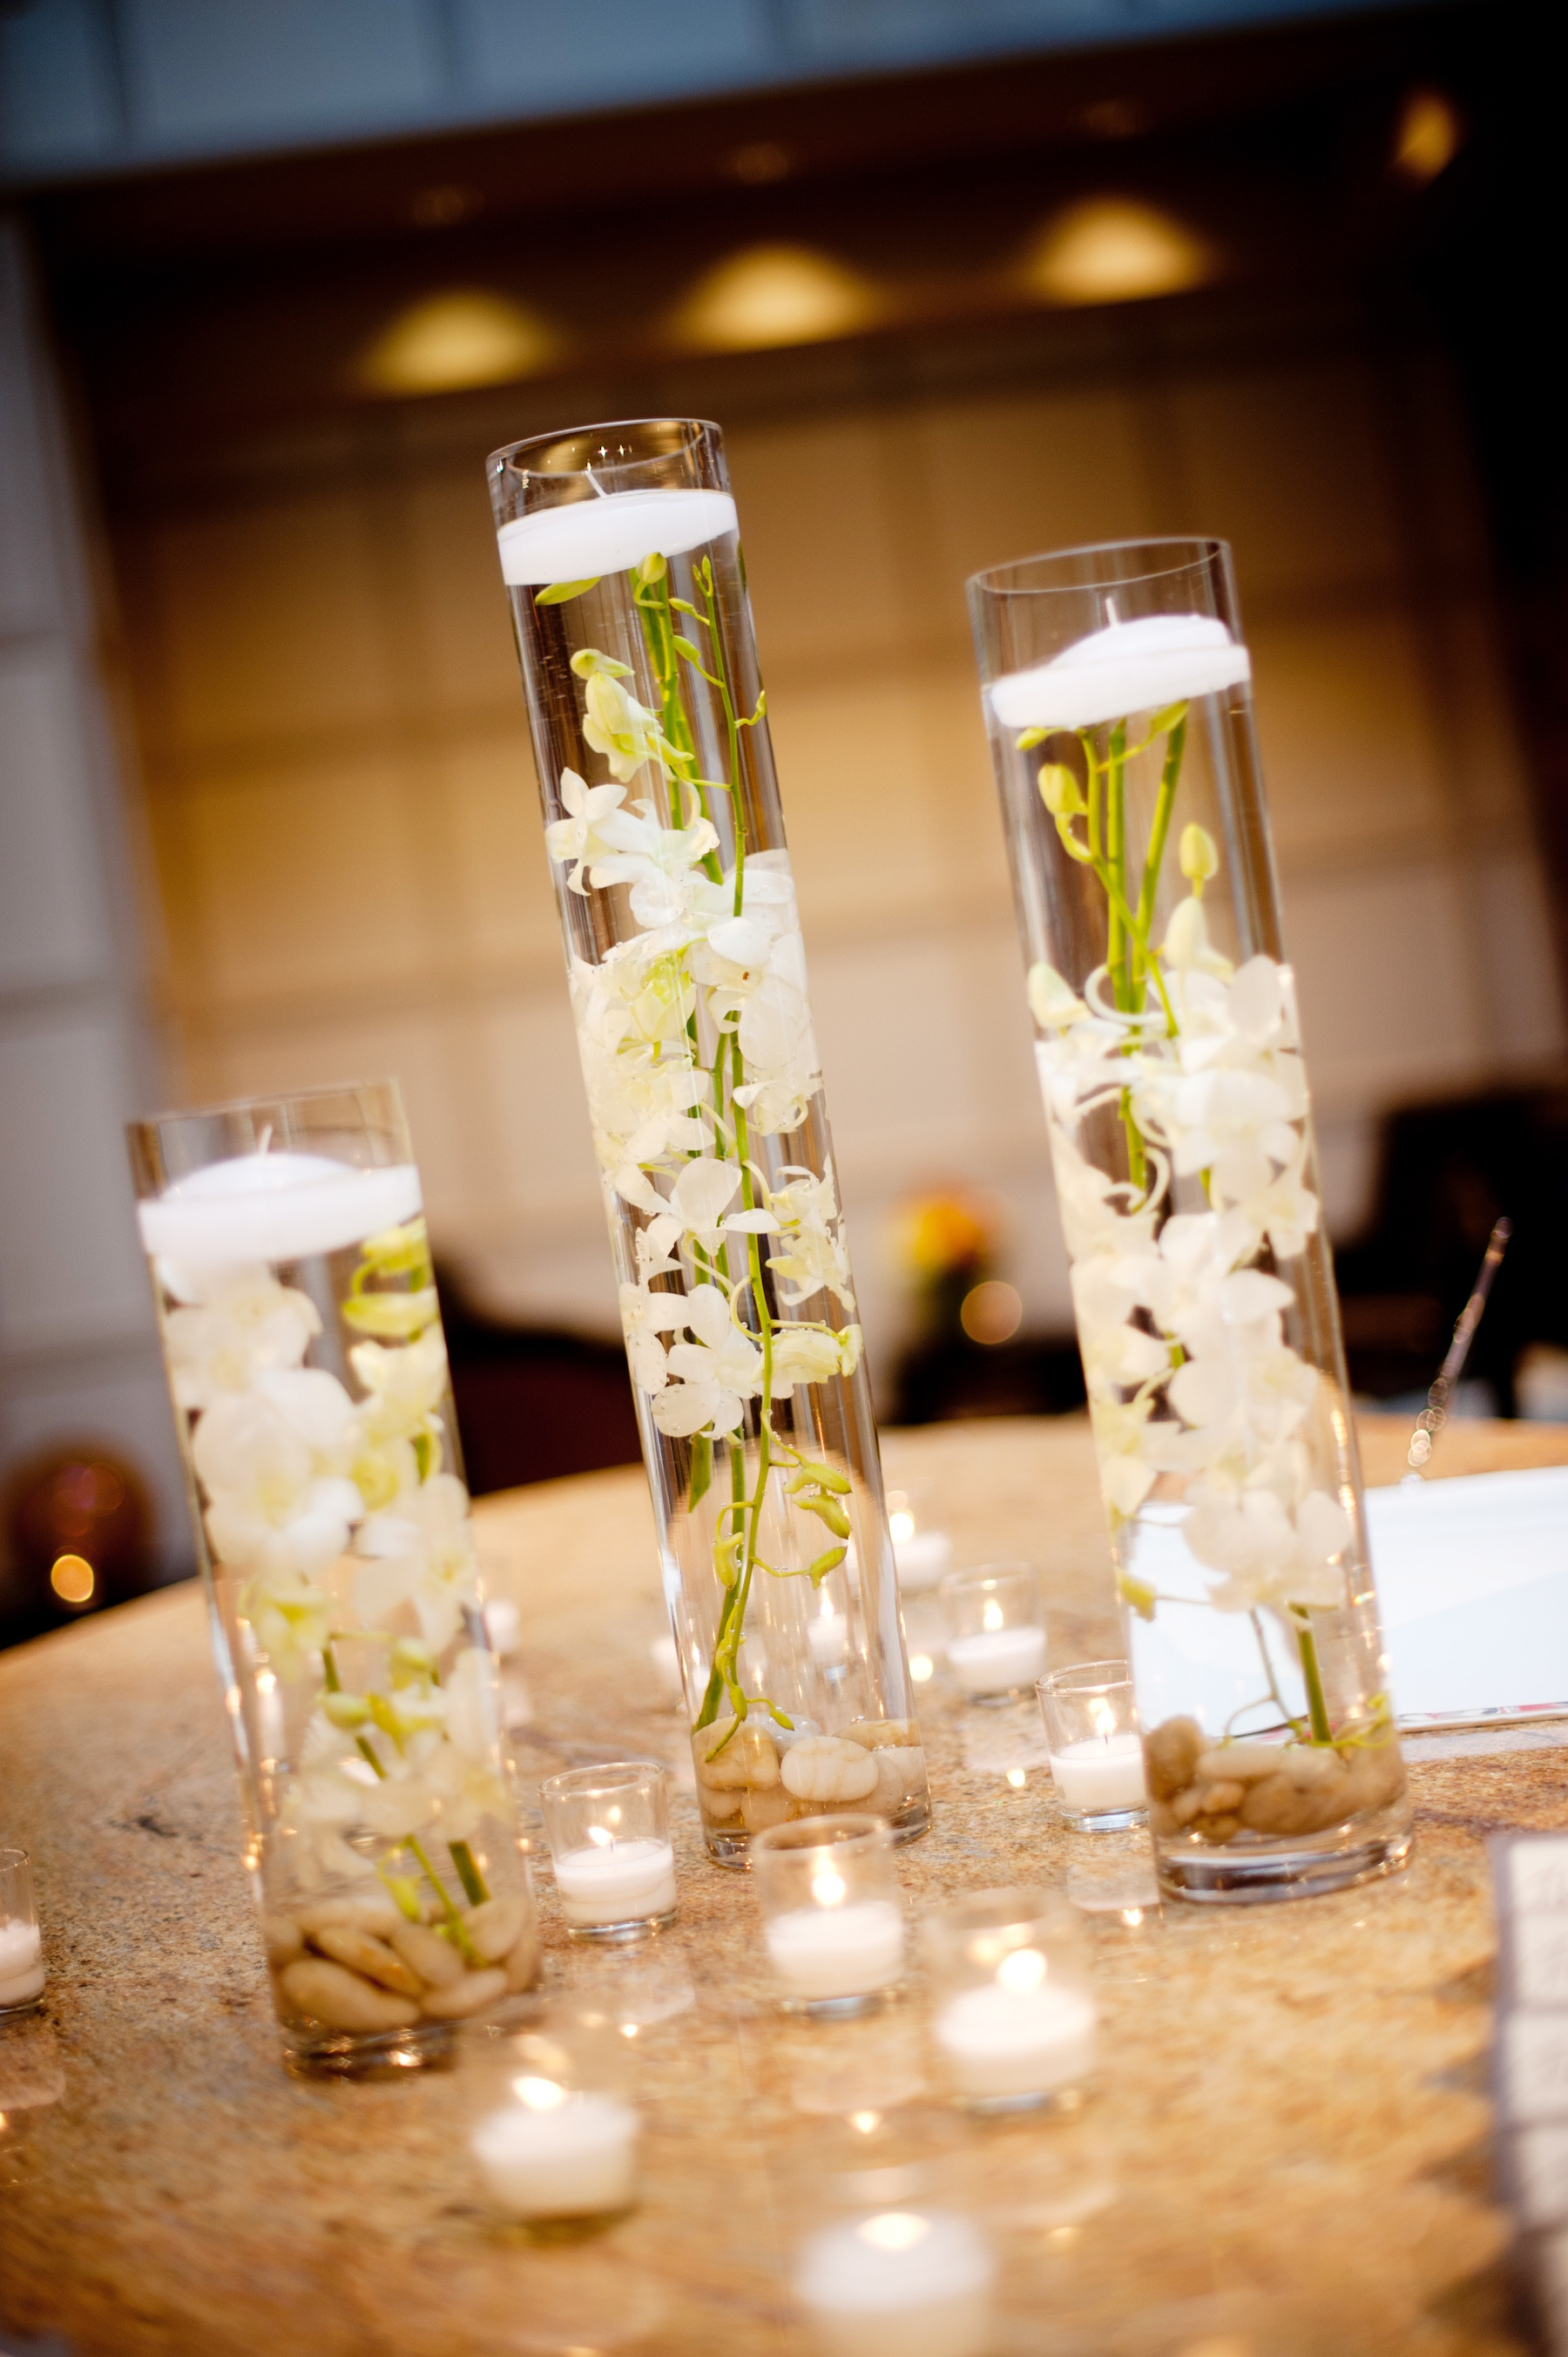 Elegant real wedding with simple diy details hurricane vases floating white o - Deco de table mariage ...